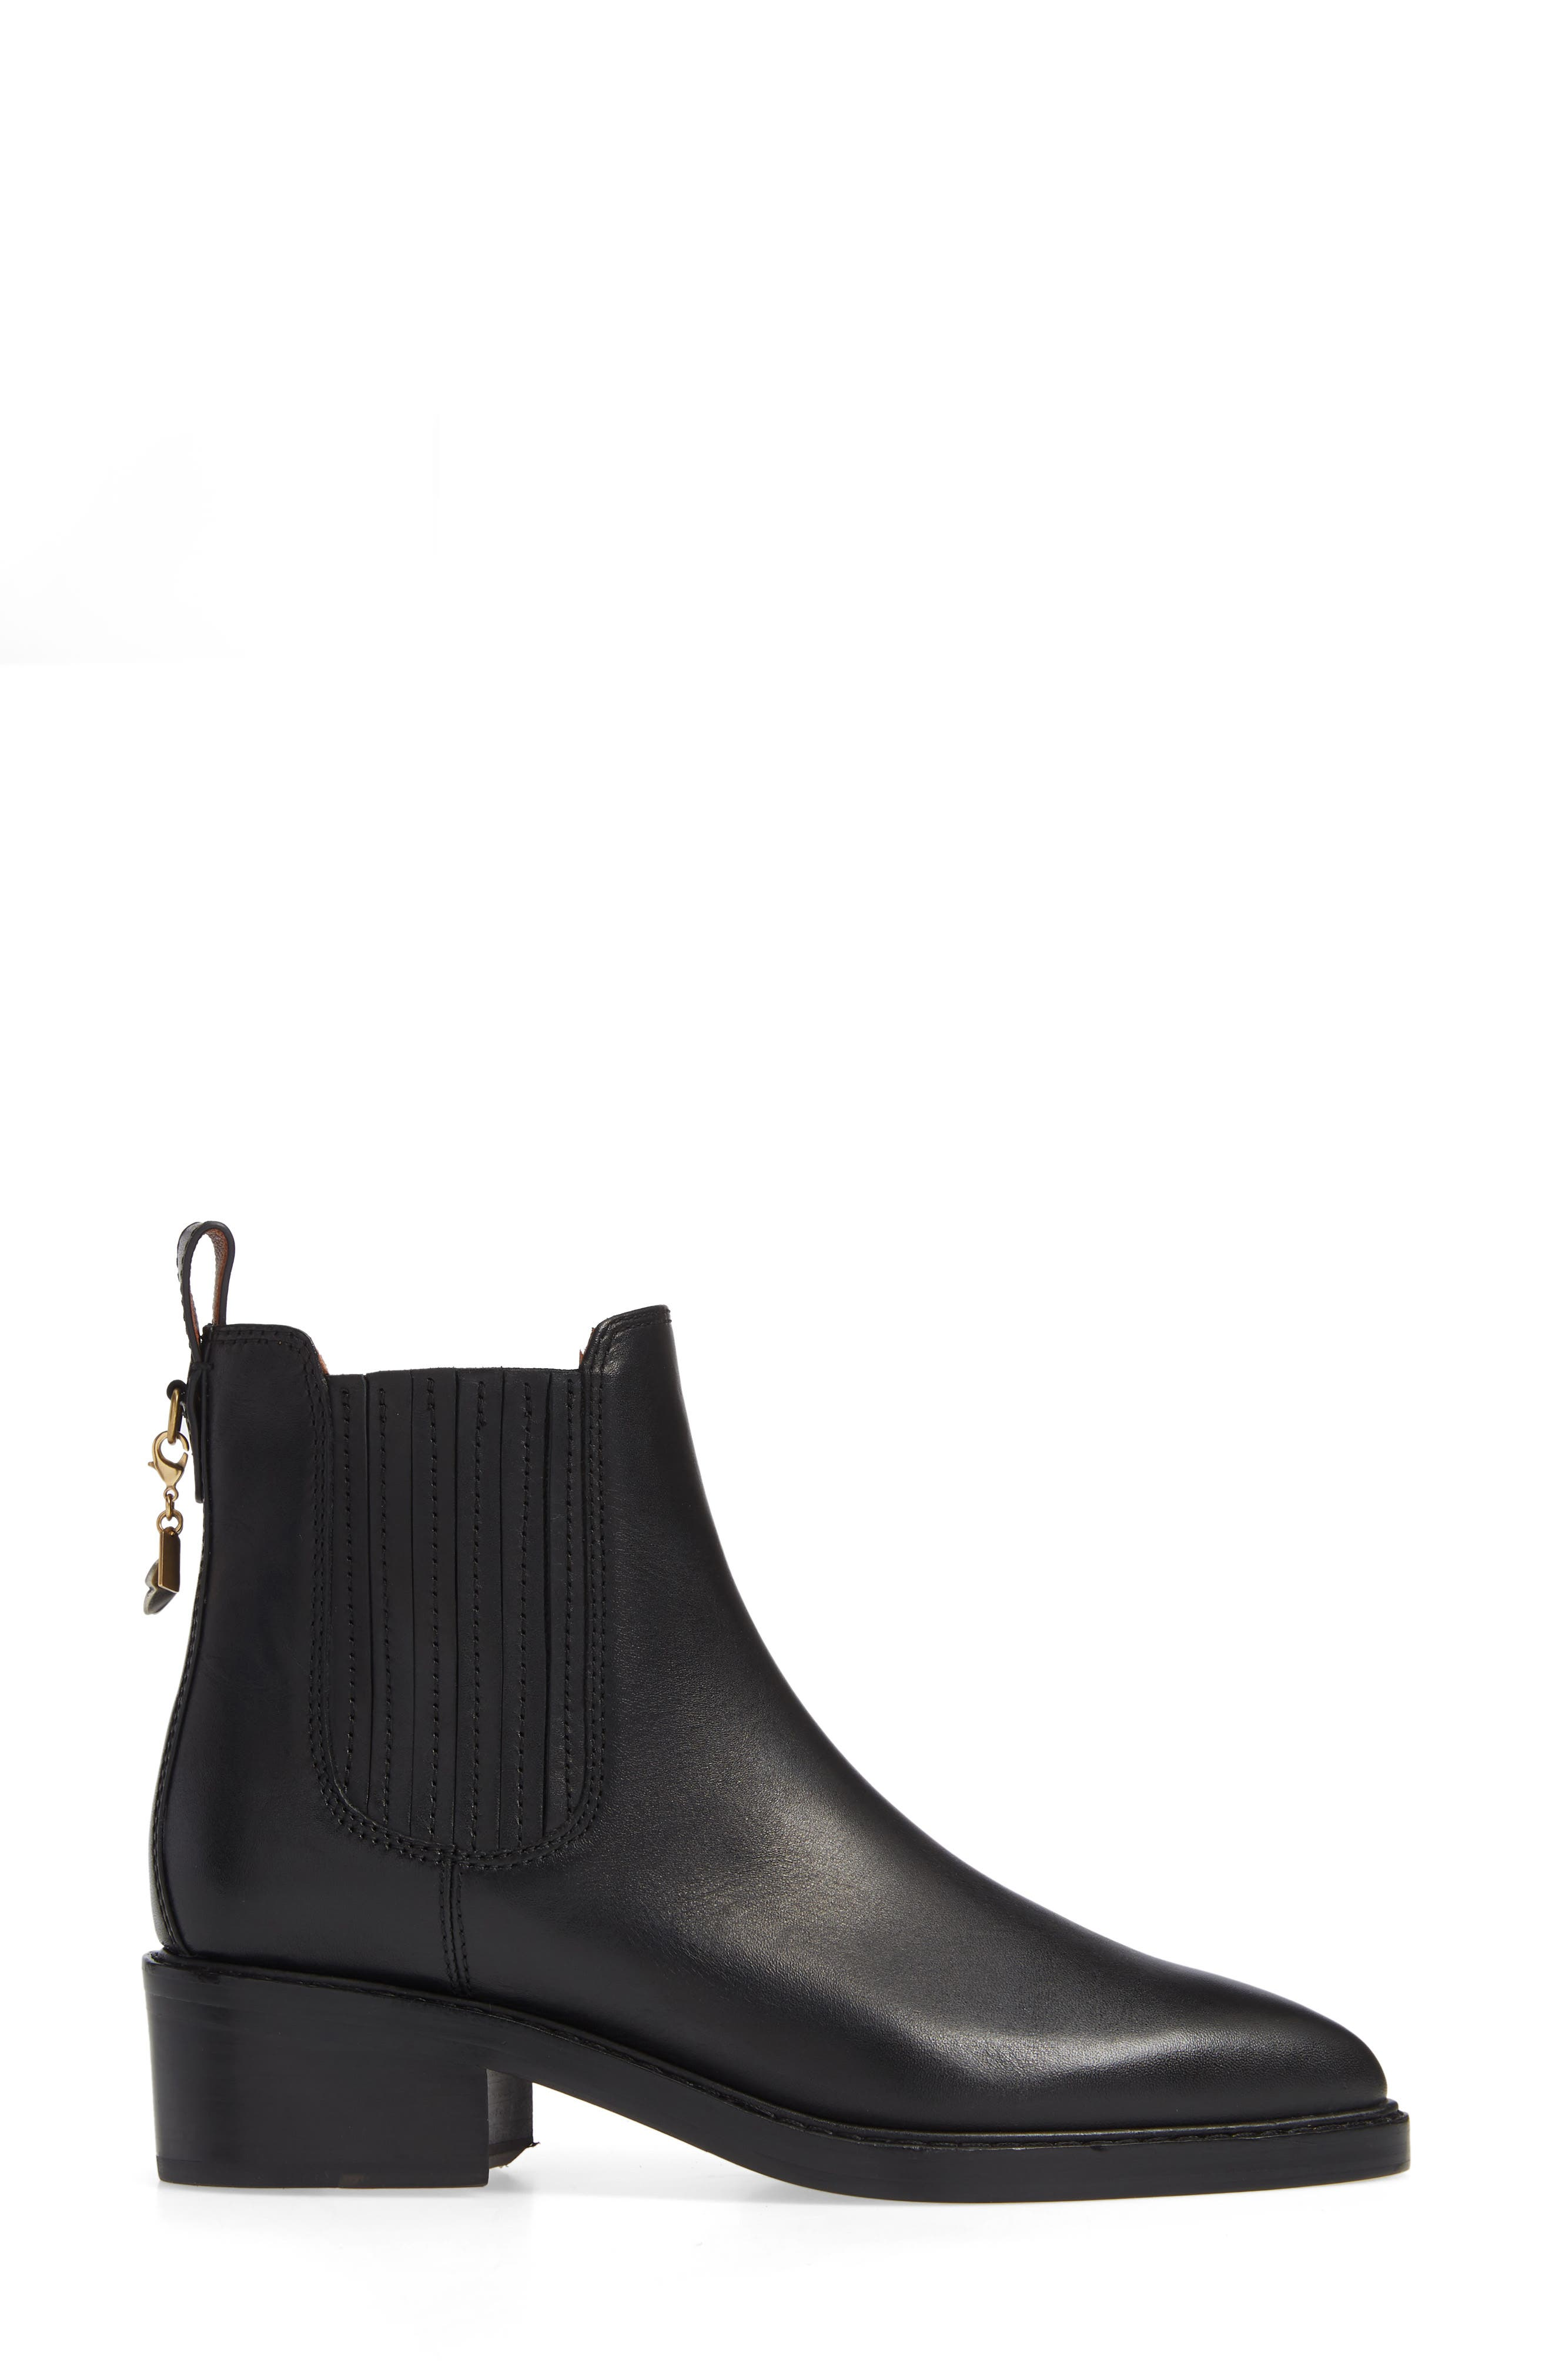 Bowery Chelsea Bootie,                             Alternate thumbnail 3, color,                             BLACK LEATHER